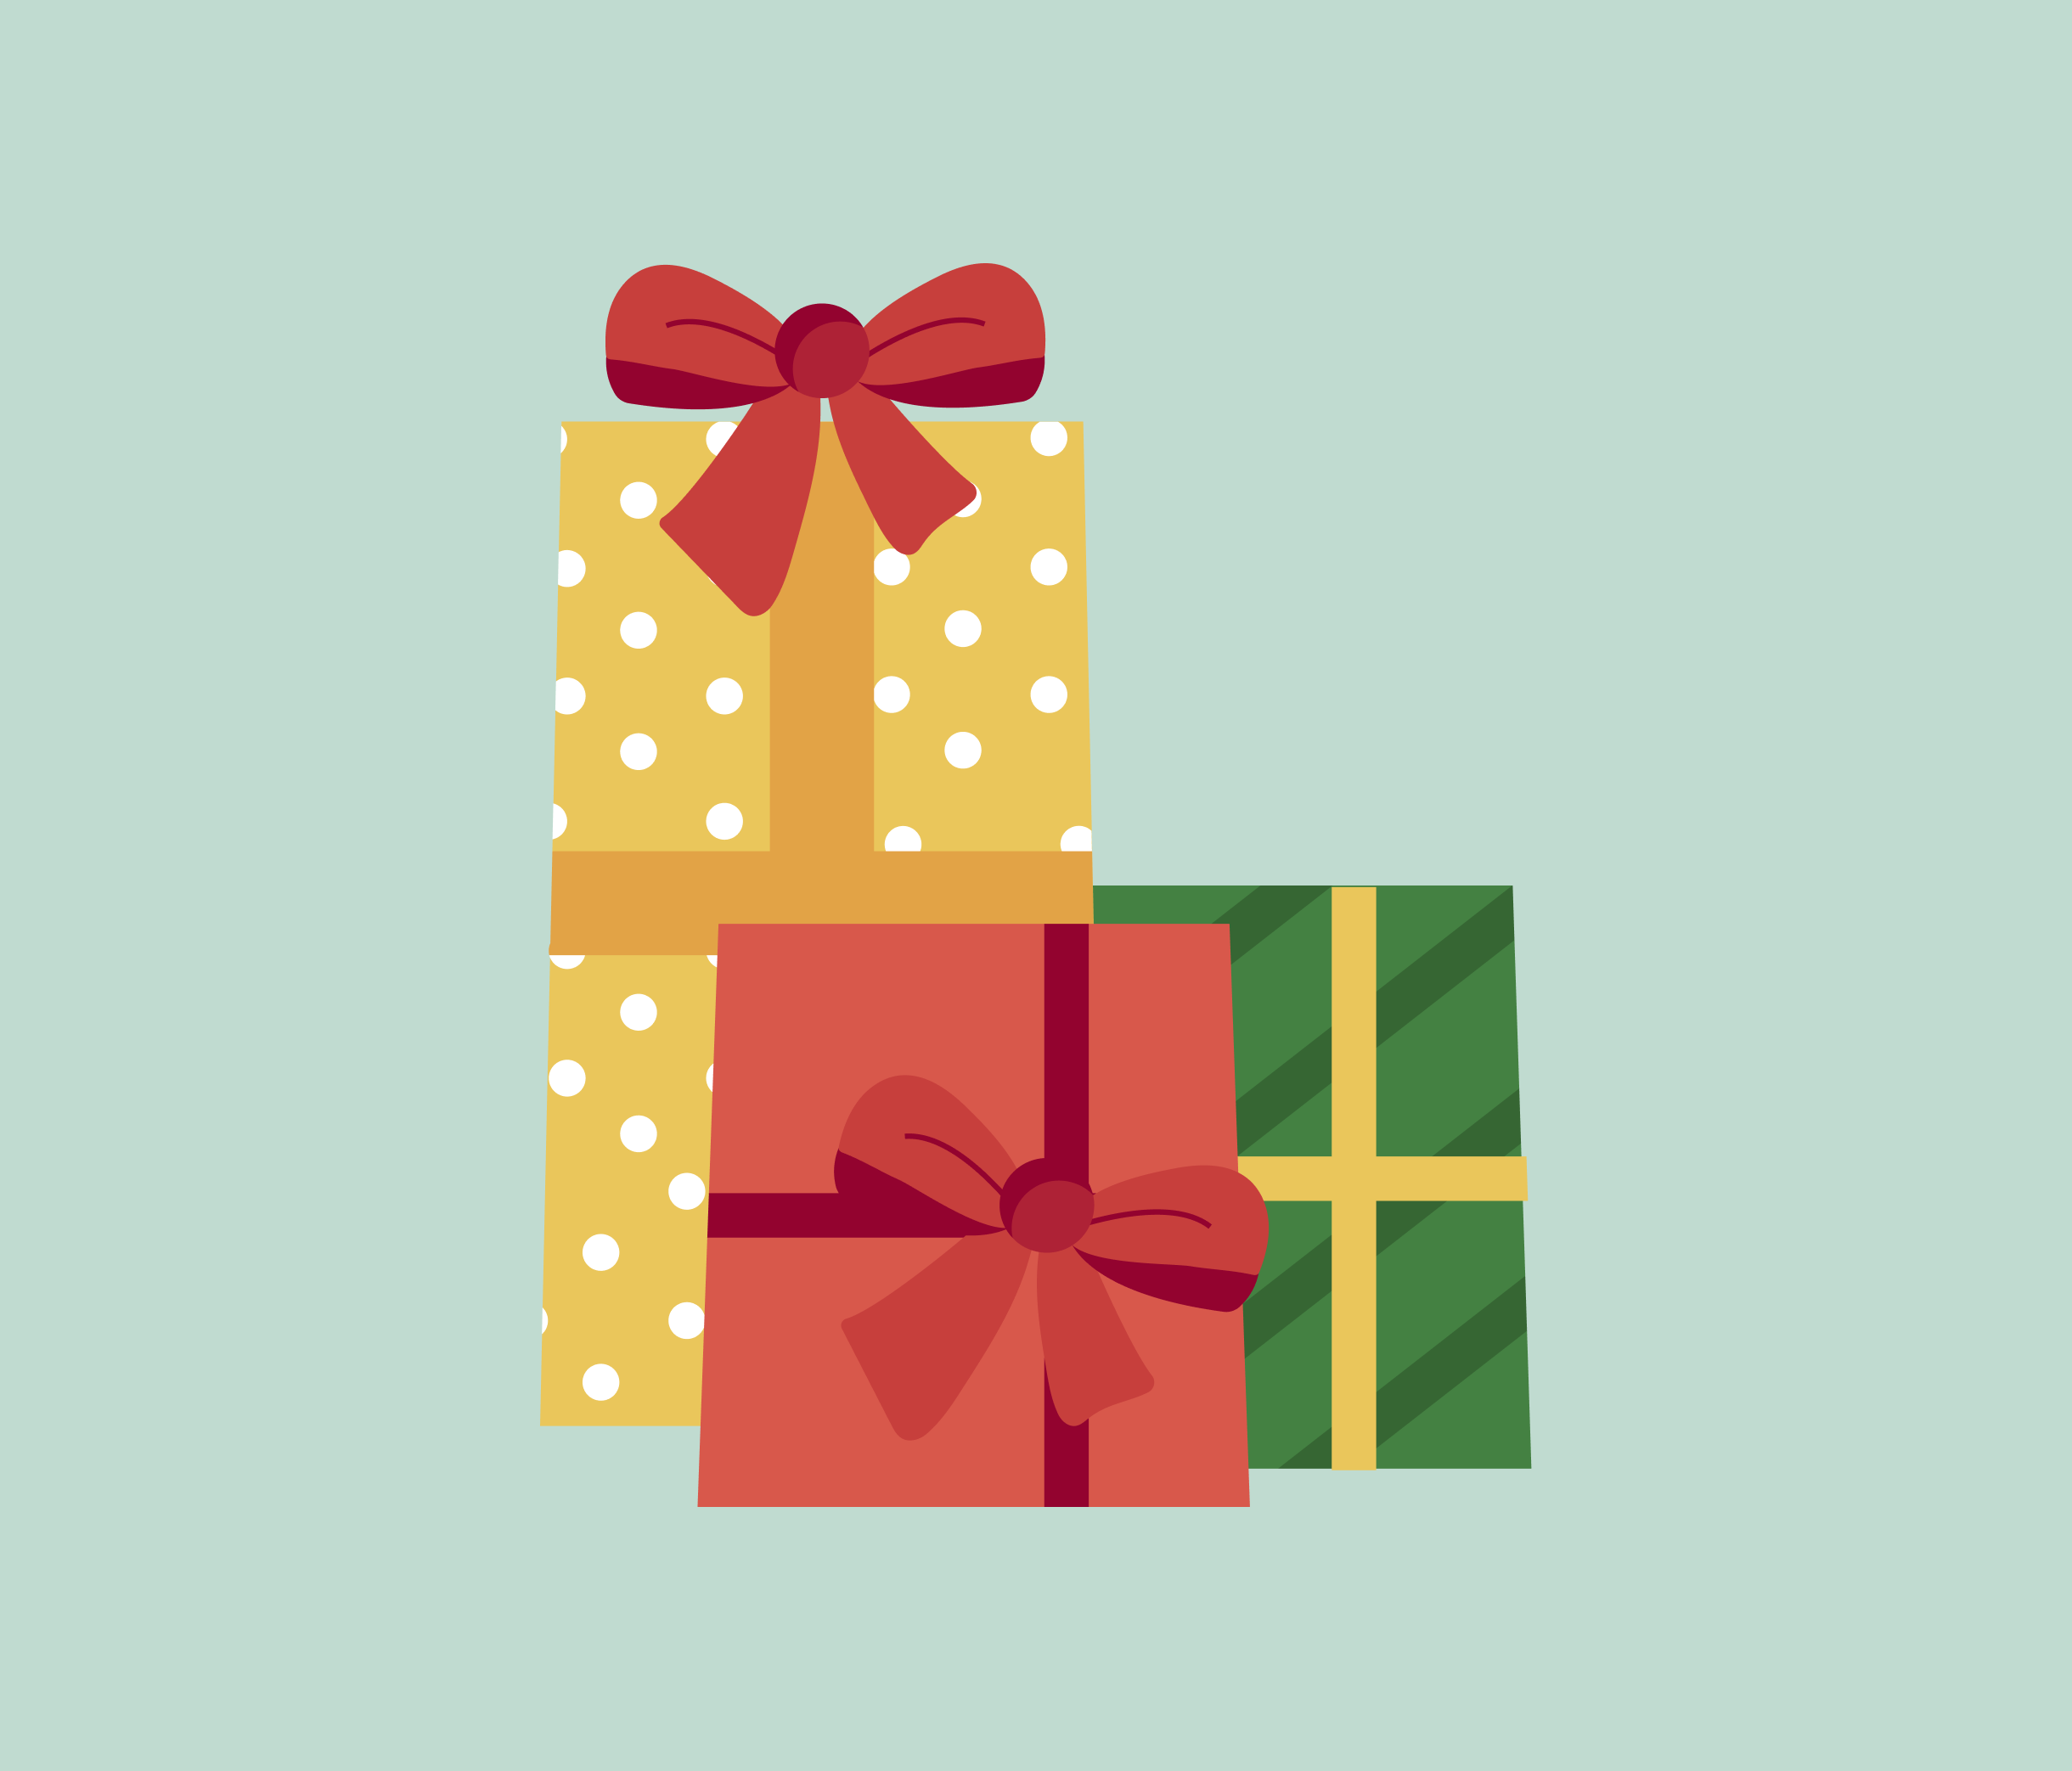 Christmas Gift Illustration for PowerPoint